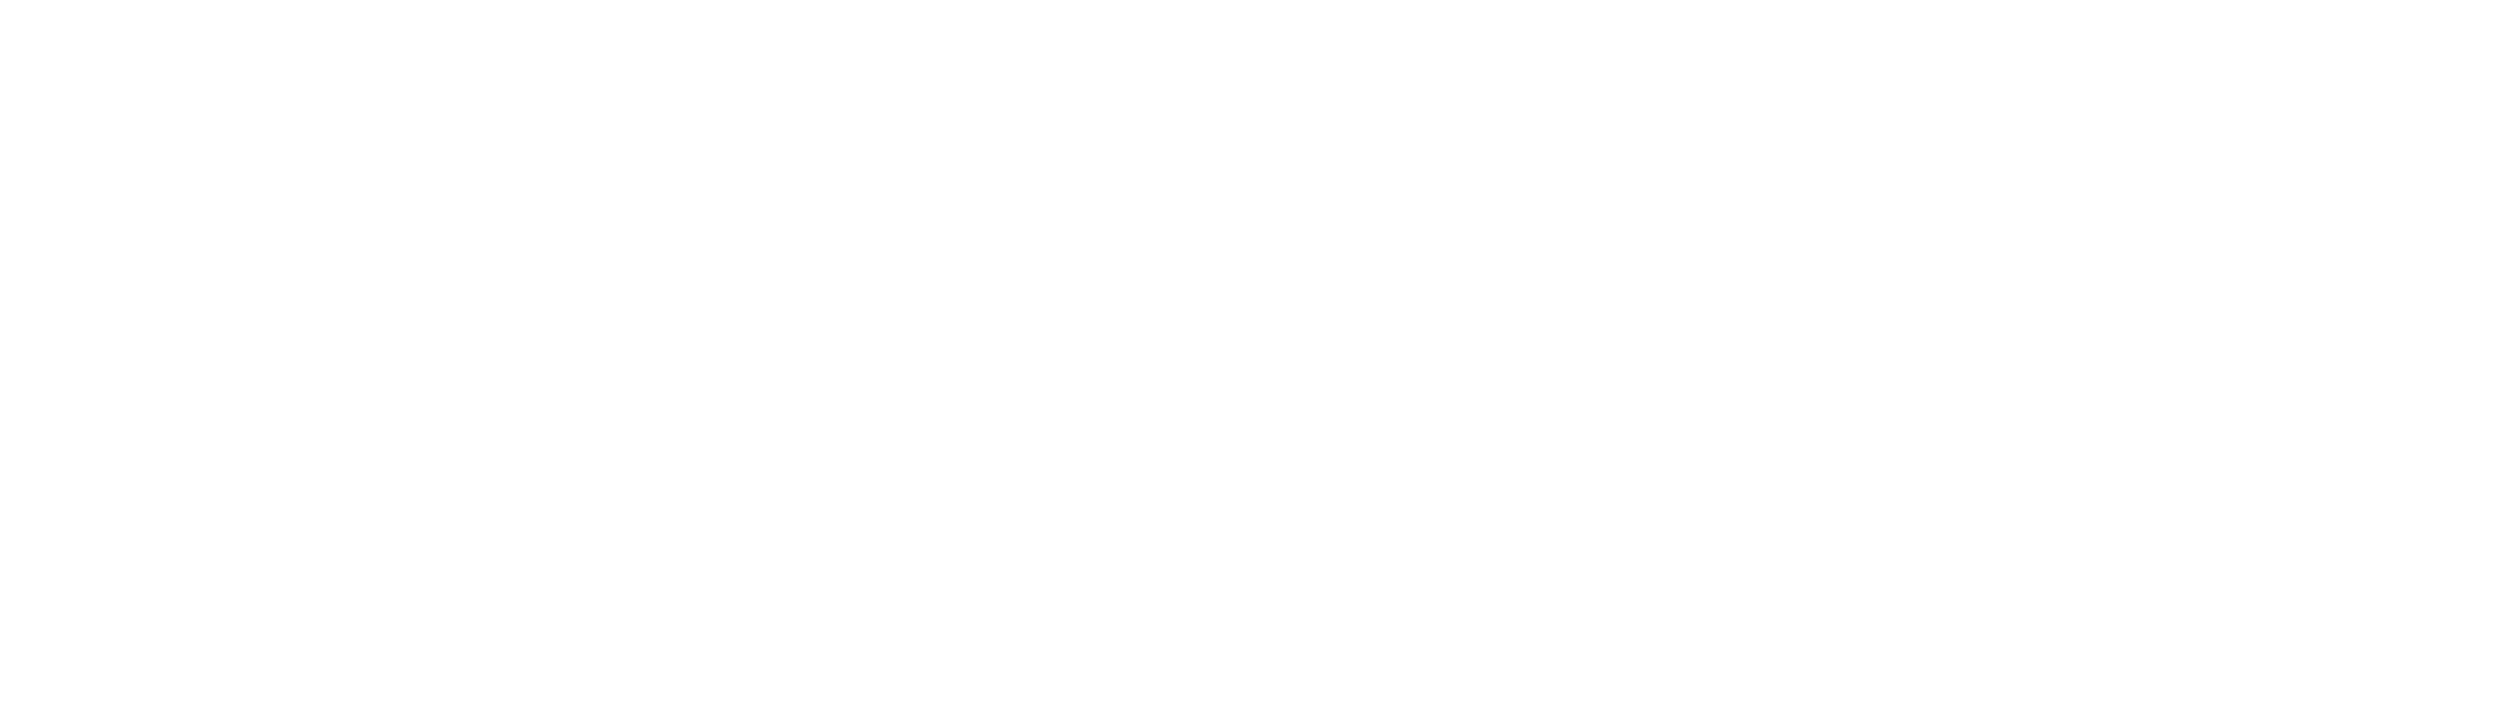 OFFICIALSELECTION-VILNIUS.png